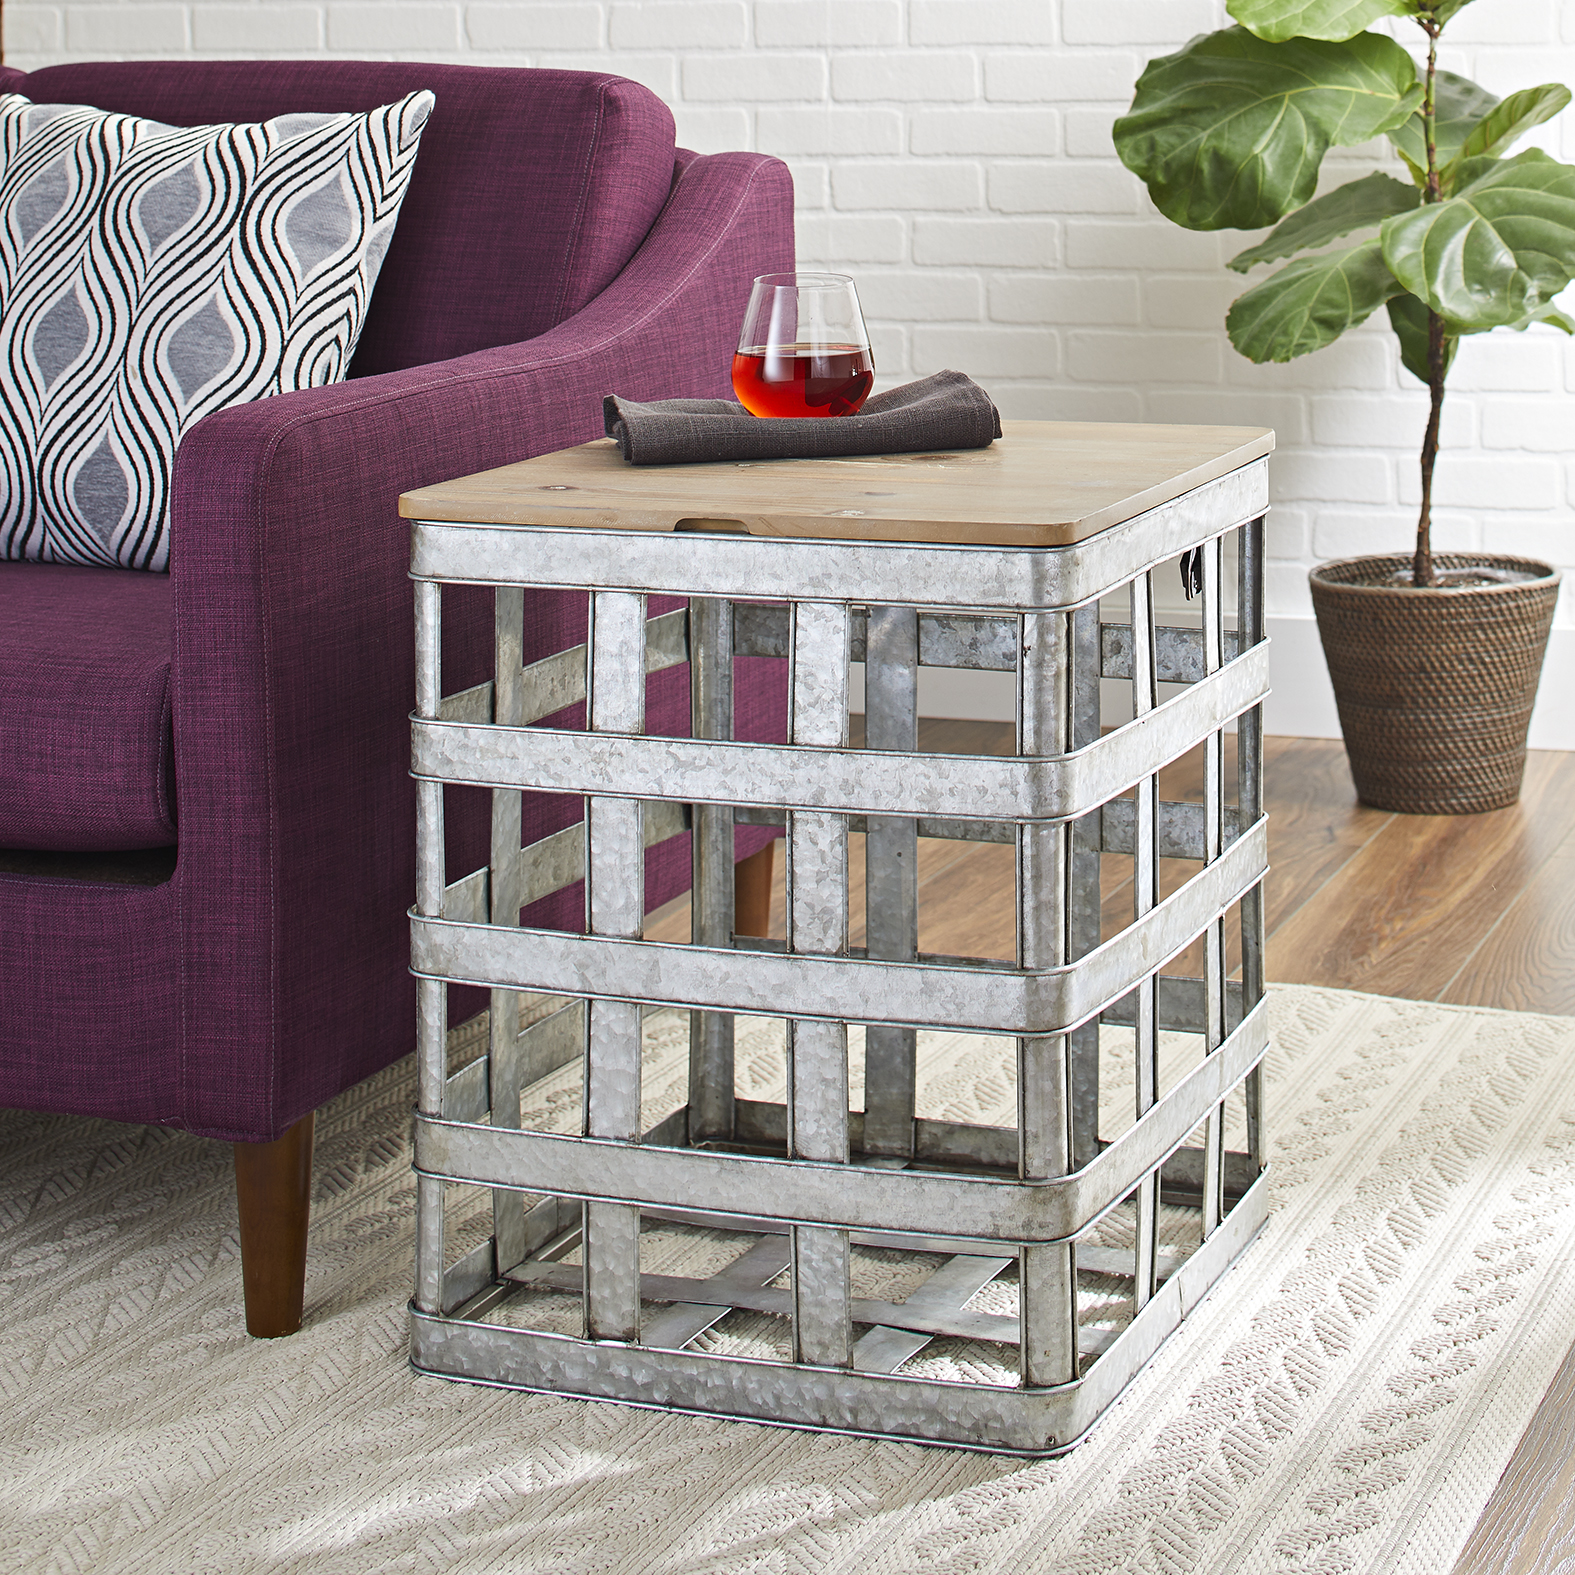 better homes and gardens wood galvanized metal lift top accent table silver mirrored bedside furniture pottery barn pine demilune console bar towels marble piece set modern